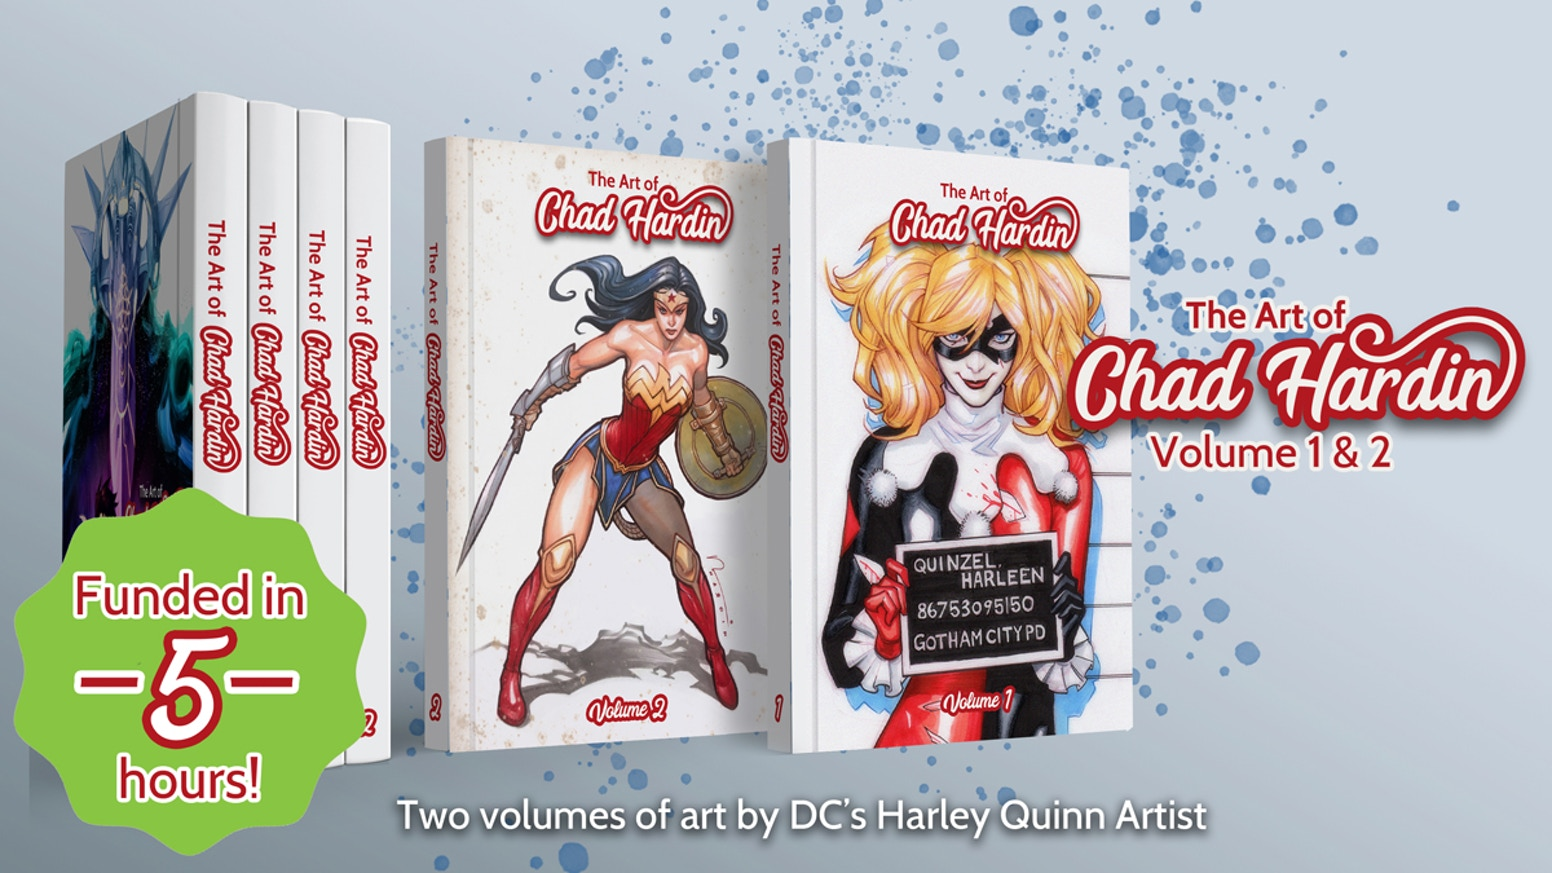 A collection of covers, pinups, and sketches by DC Harley Quinn artist Chad Hardin.